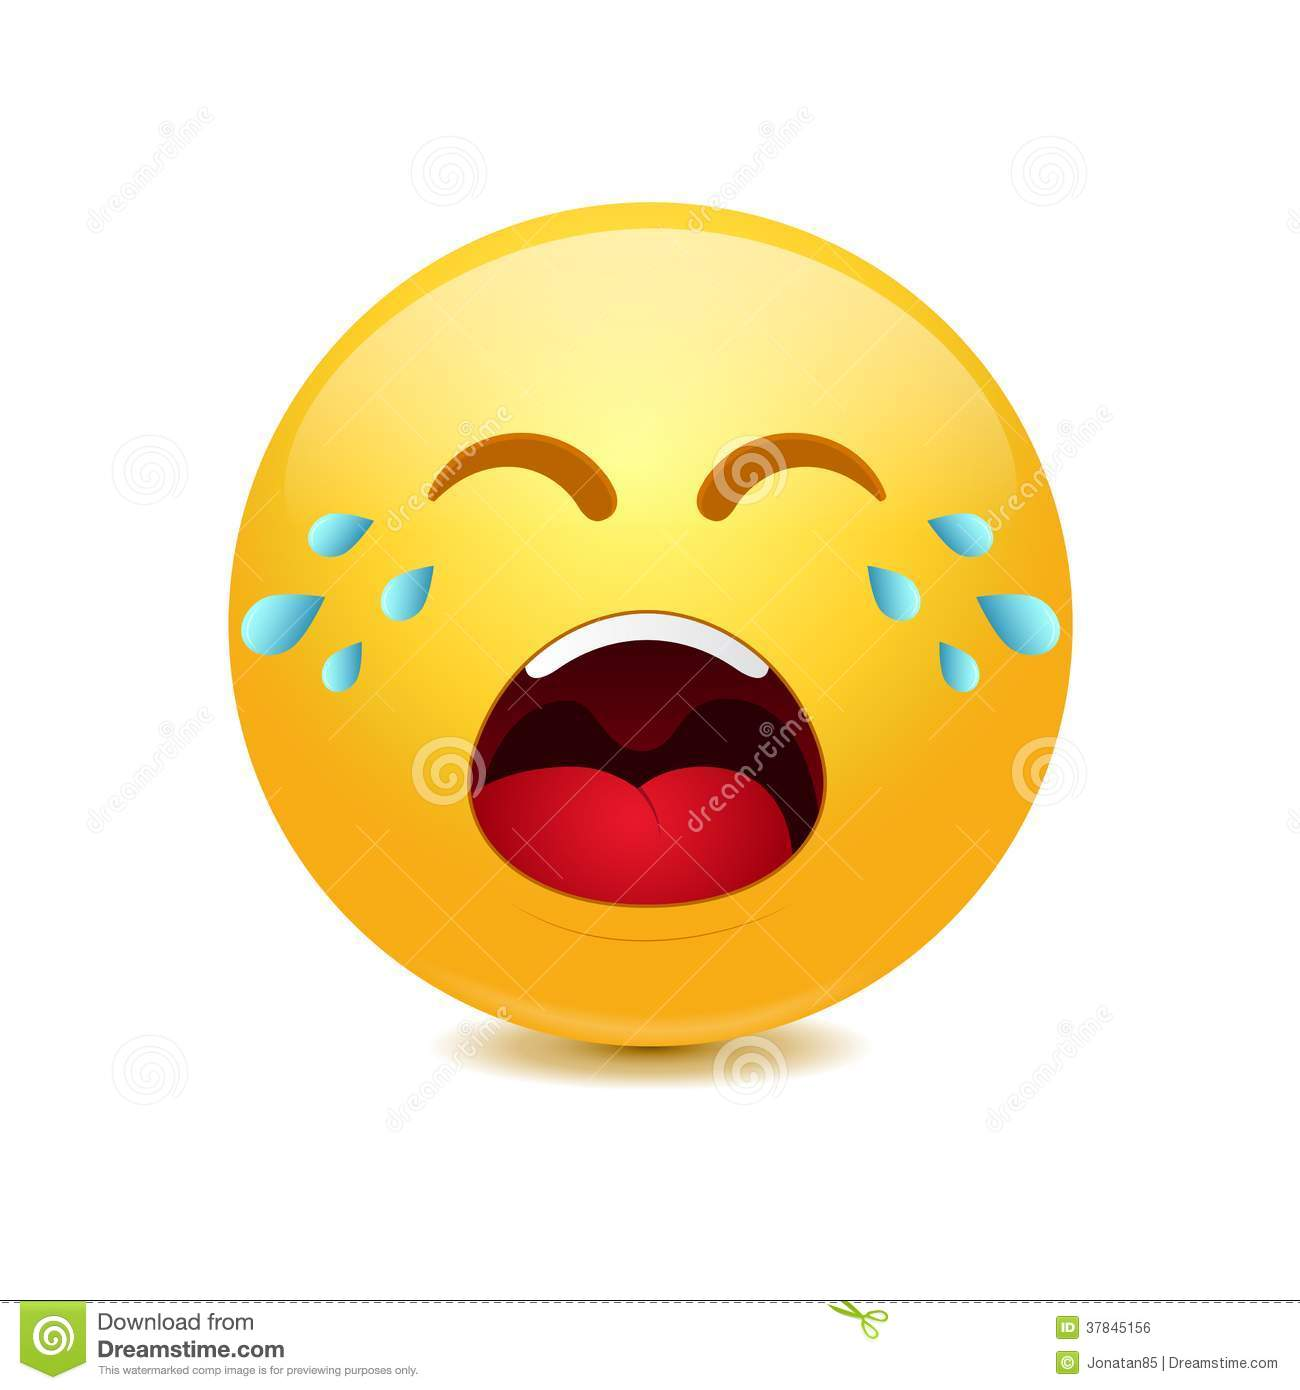 69+ Crying Face Clip Art.